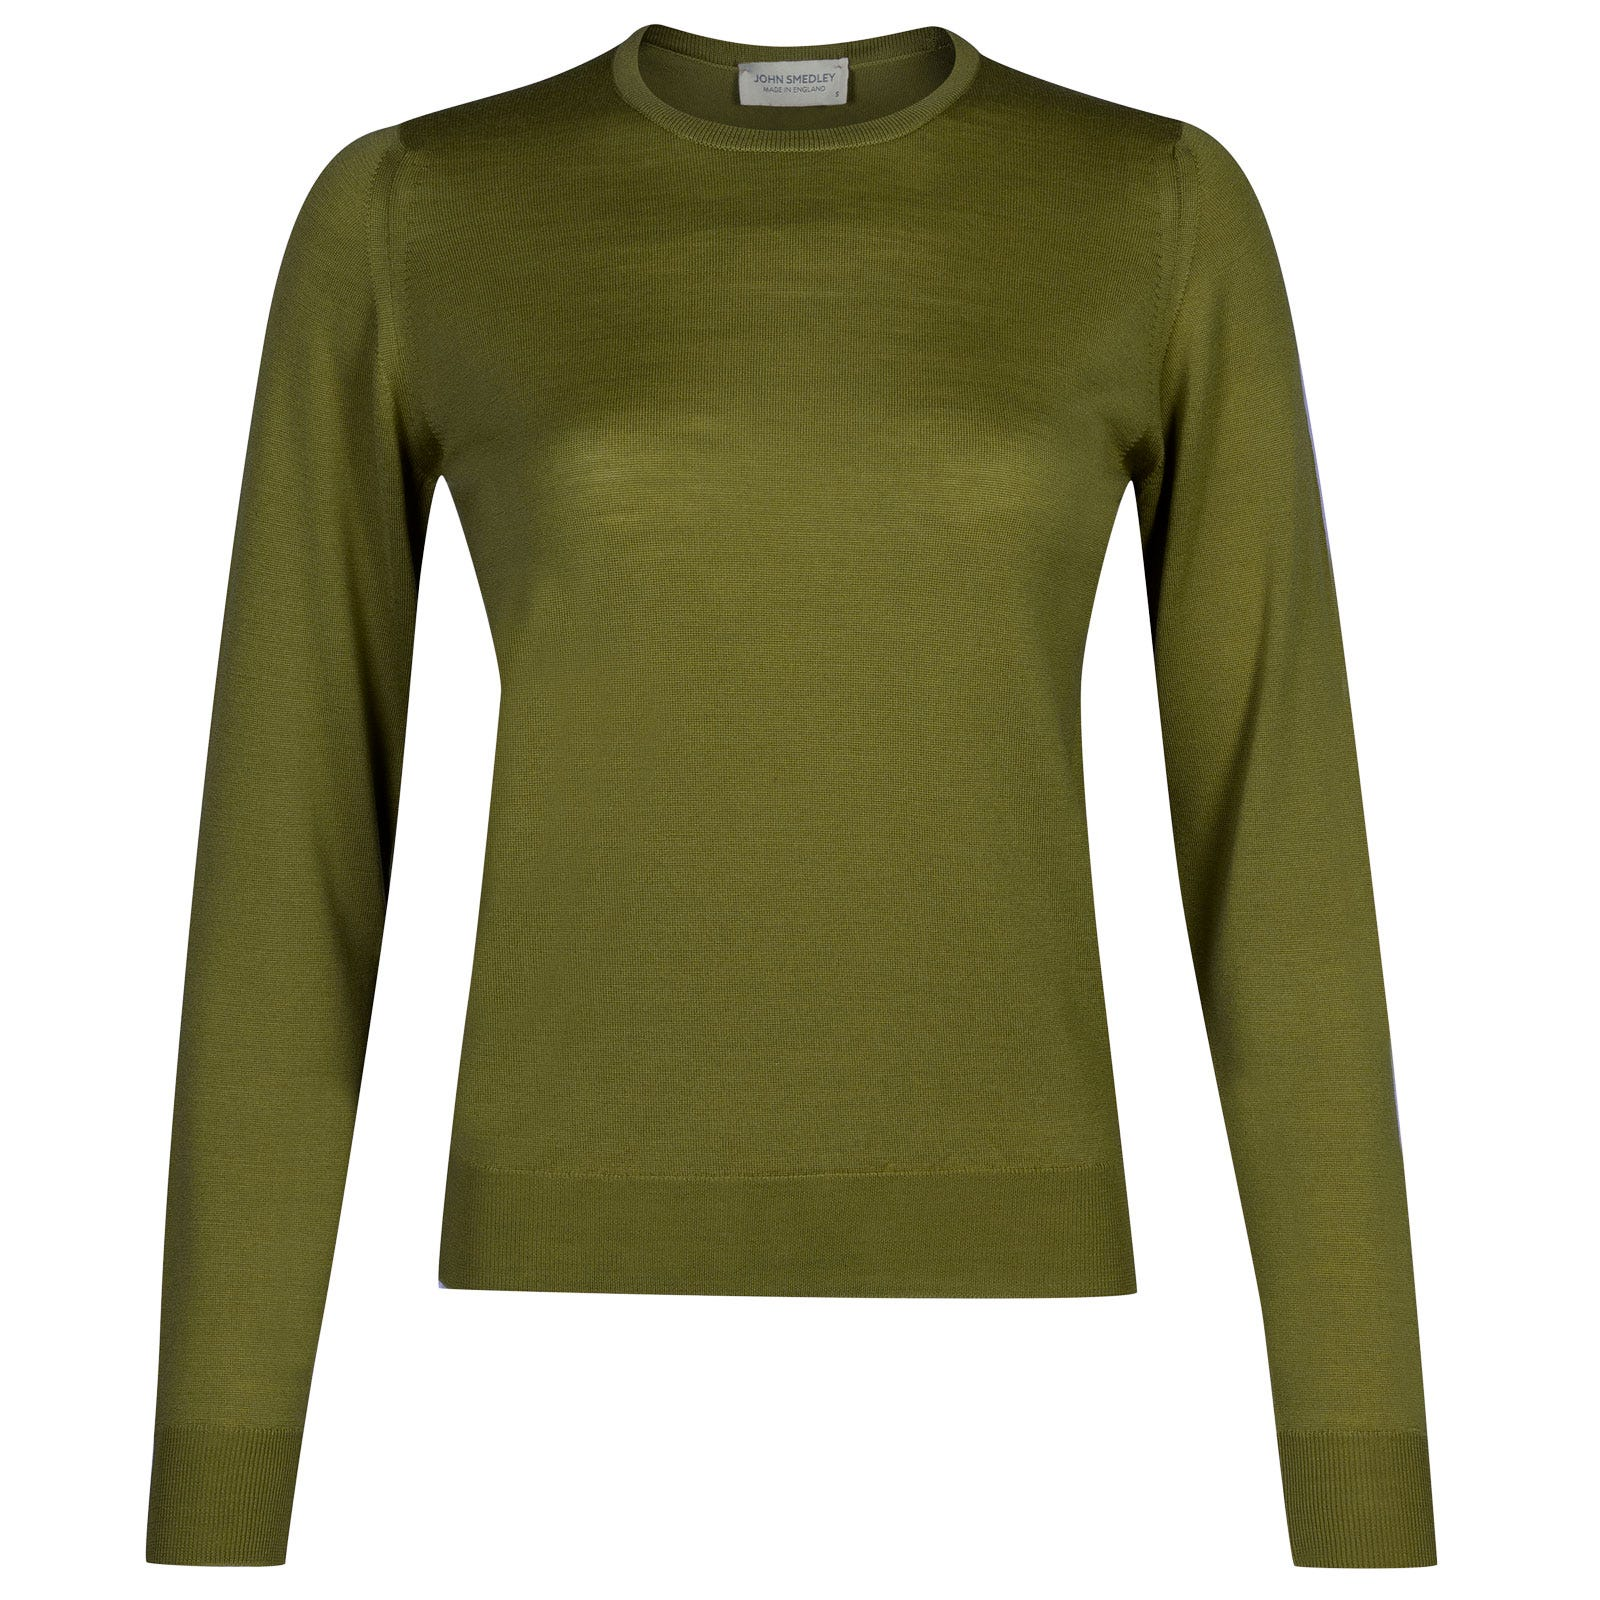 John Smedley venice Merino Wool Sweater in Lumsdale Green-M